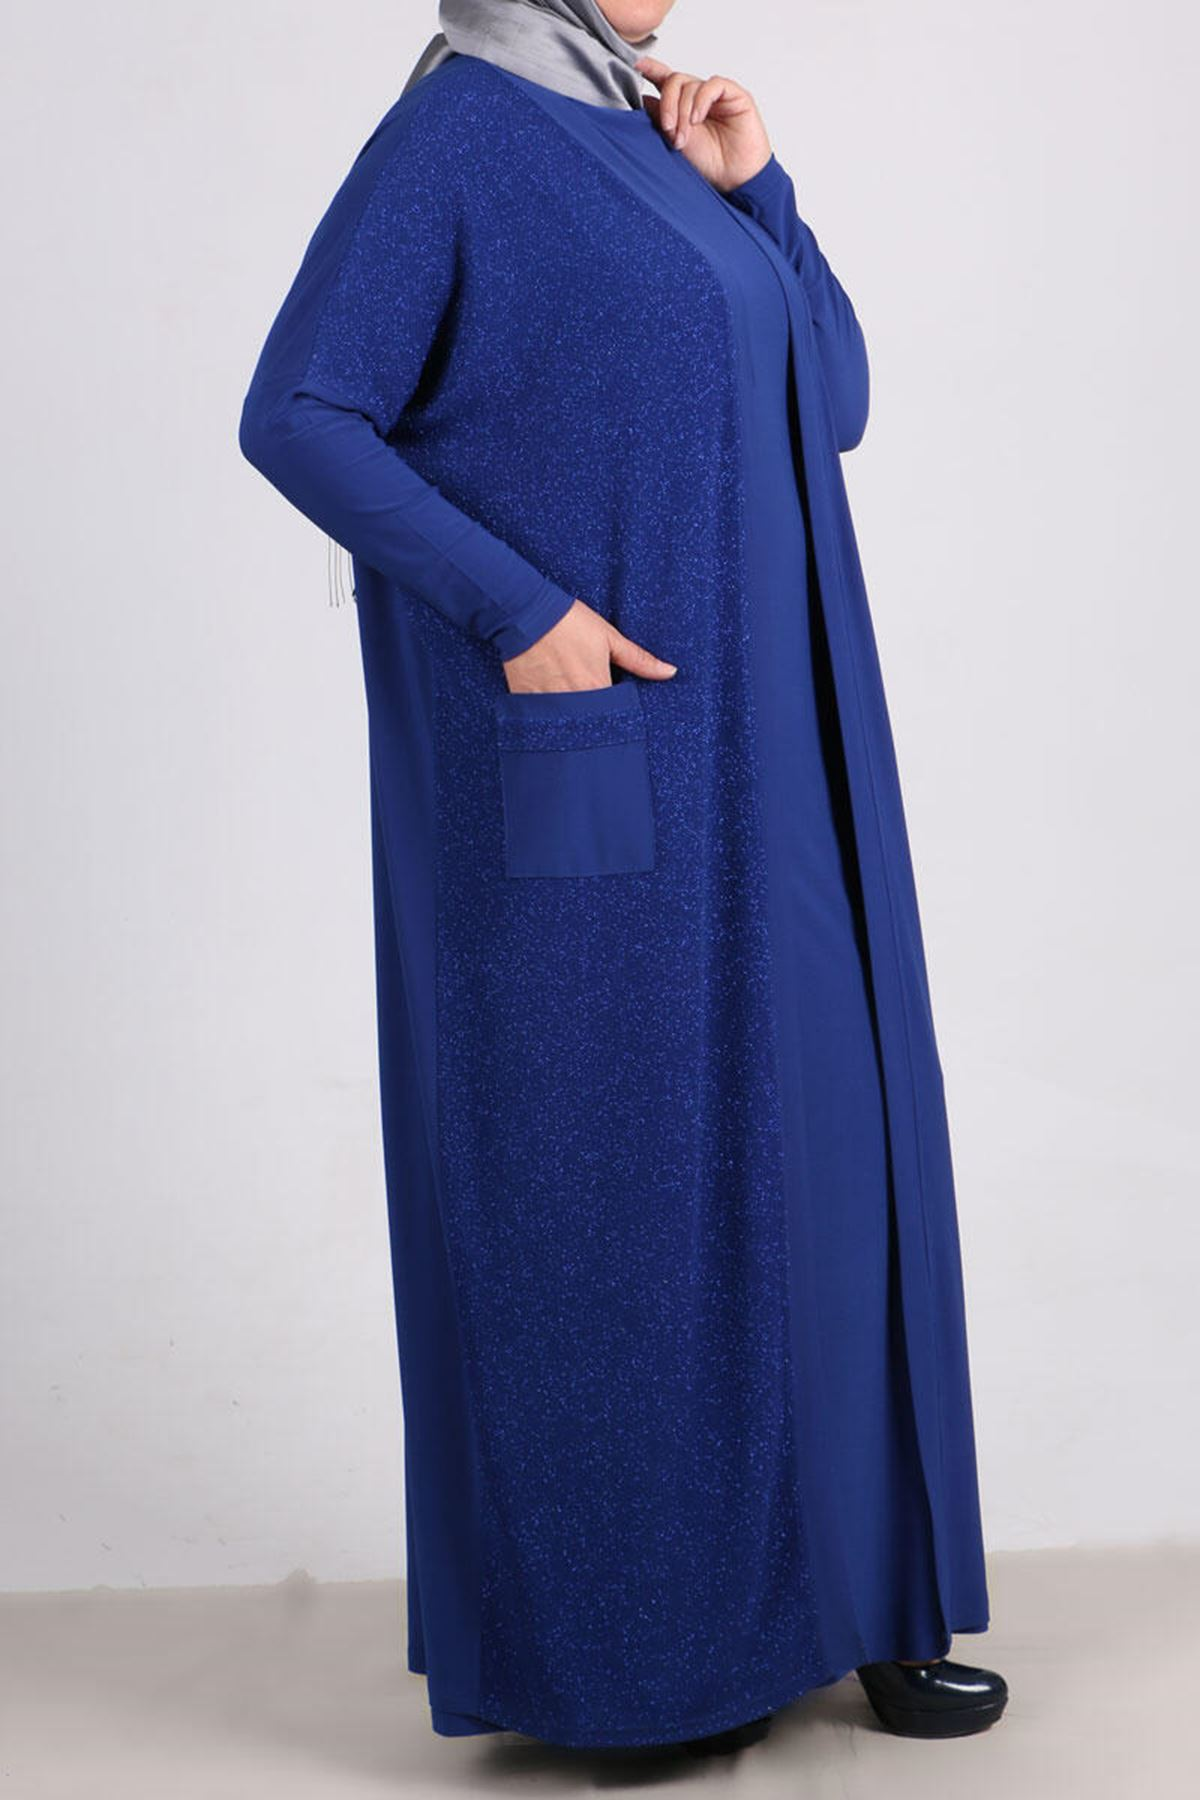 7213 Plus Size Two Piece Set with Dress and Jacket- Saxe